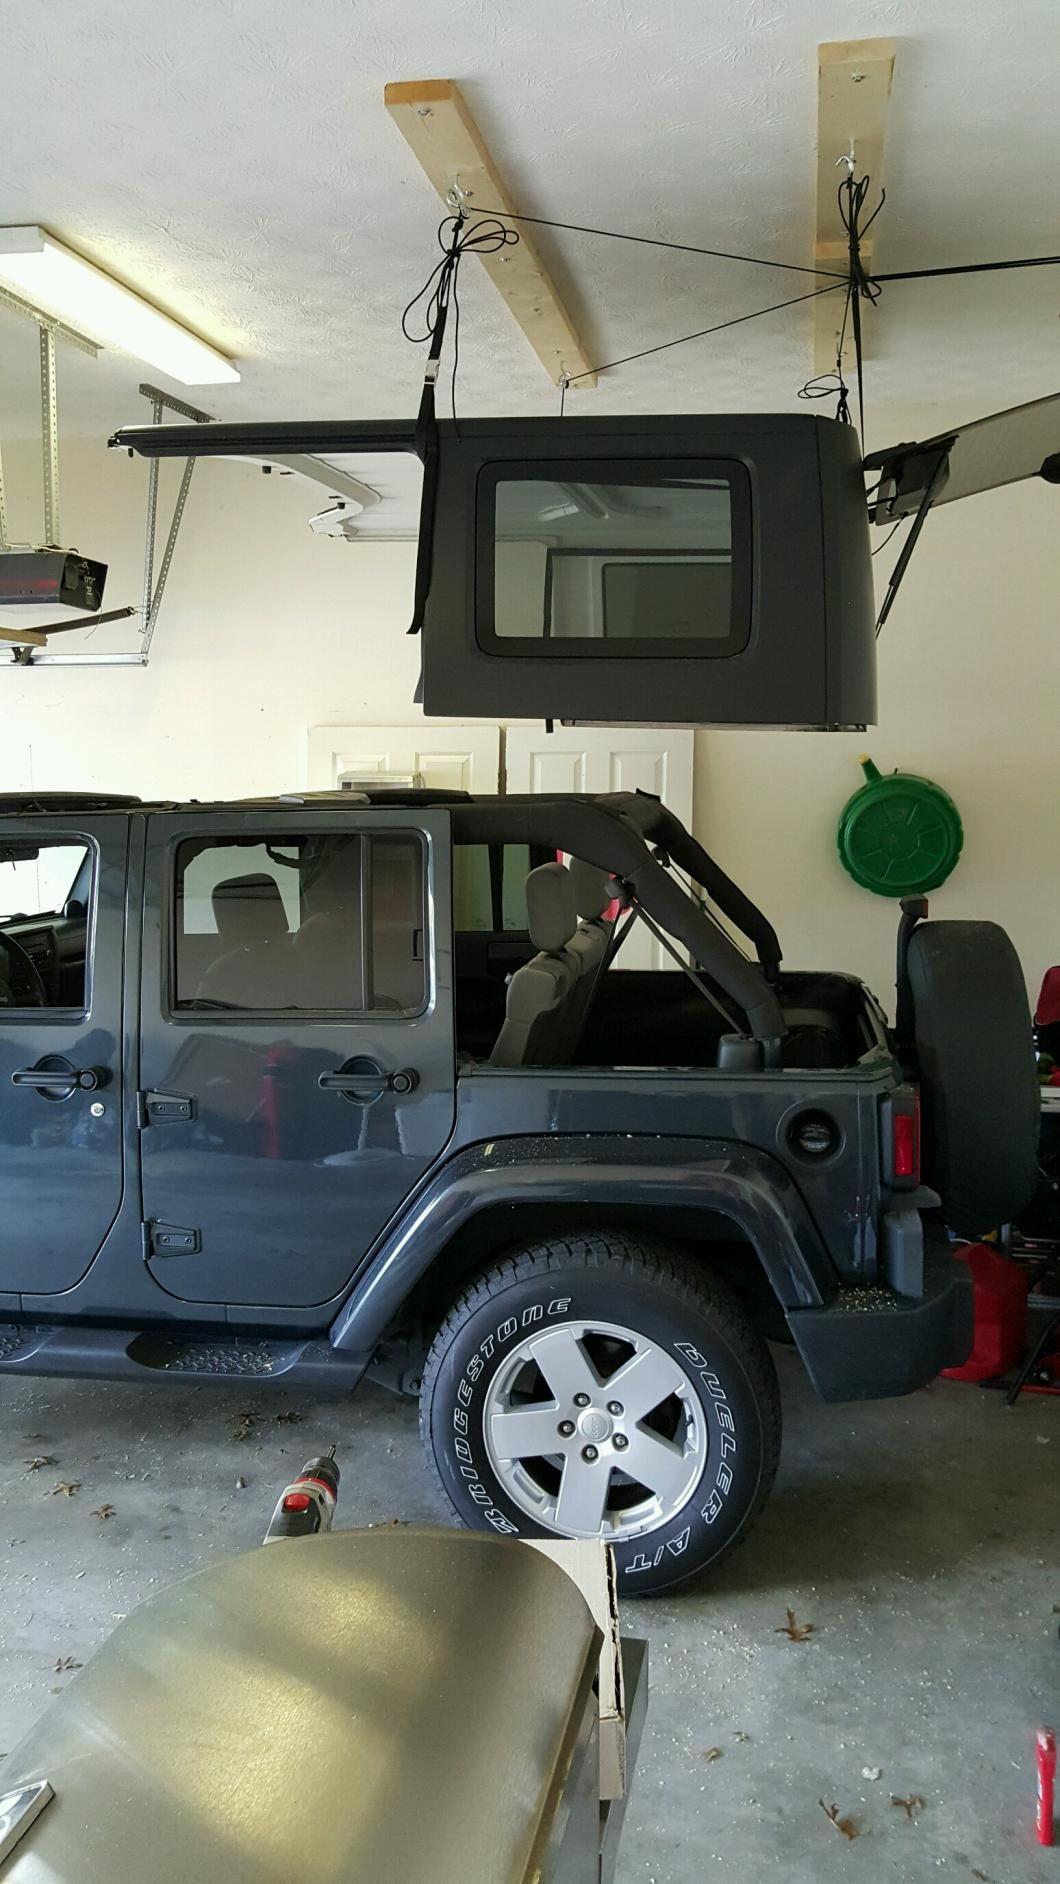 Harken Jeep Wrangler Hoister Garage Storage 4 Point Lift System 7803 Jeep Jeep Wrangler Jeep Garage Jeep Tops